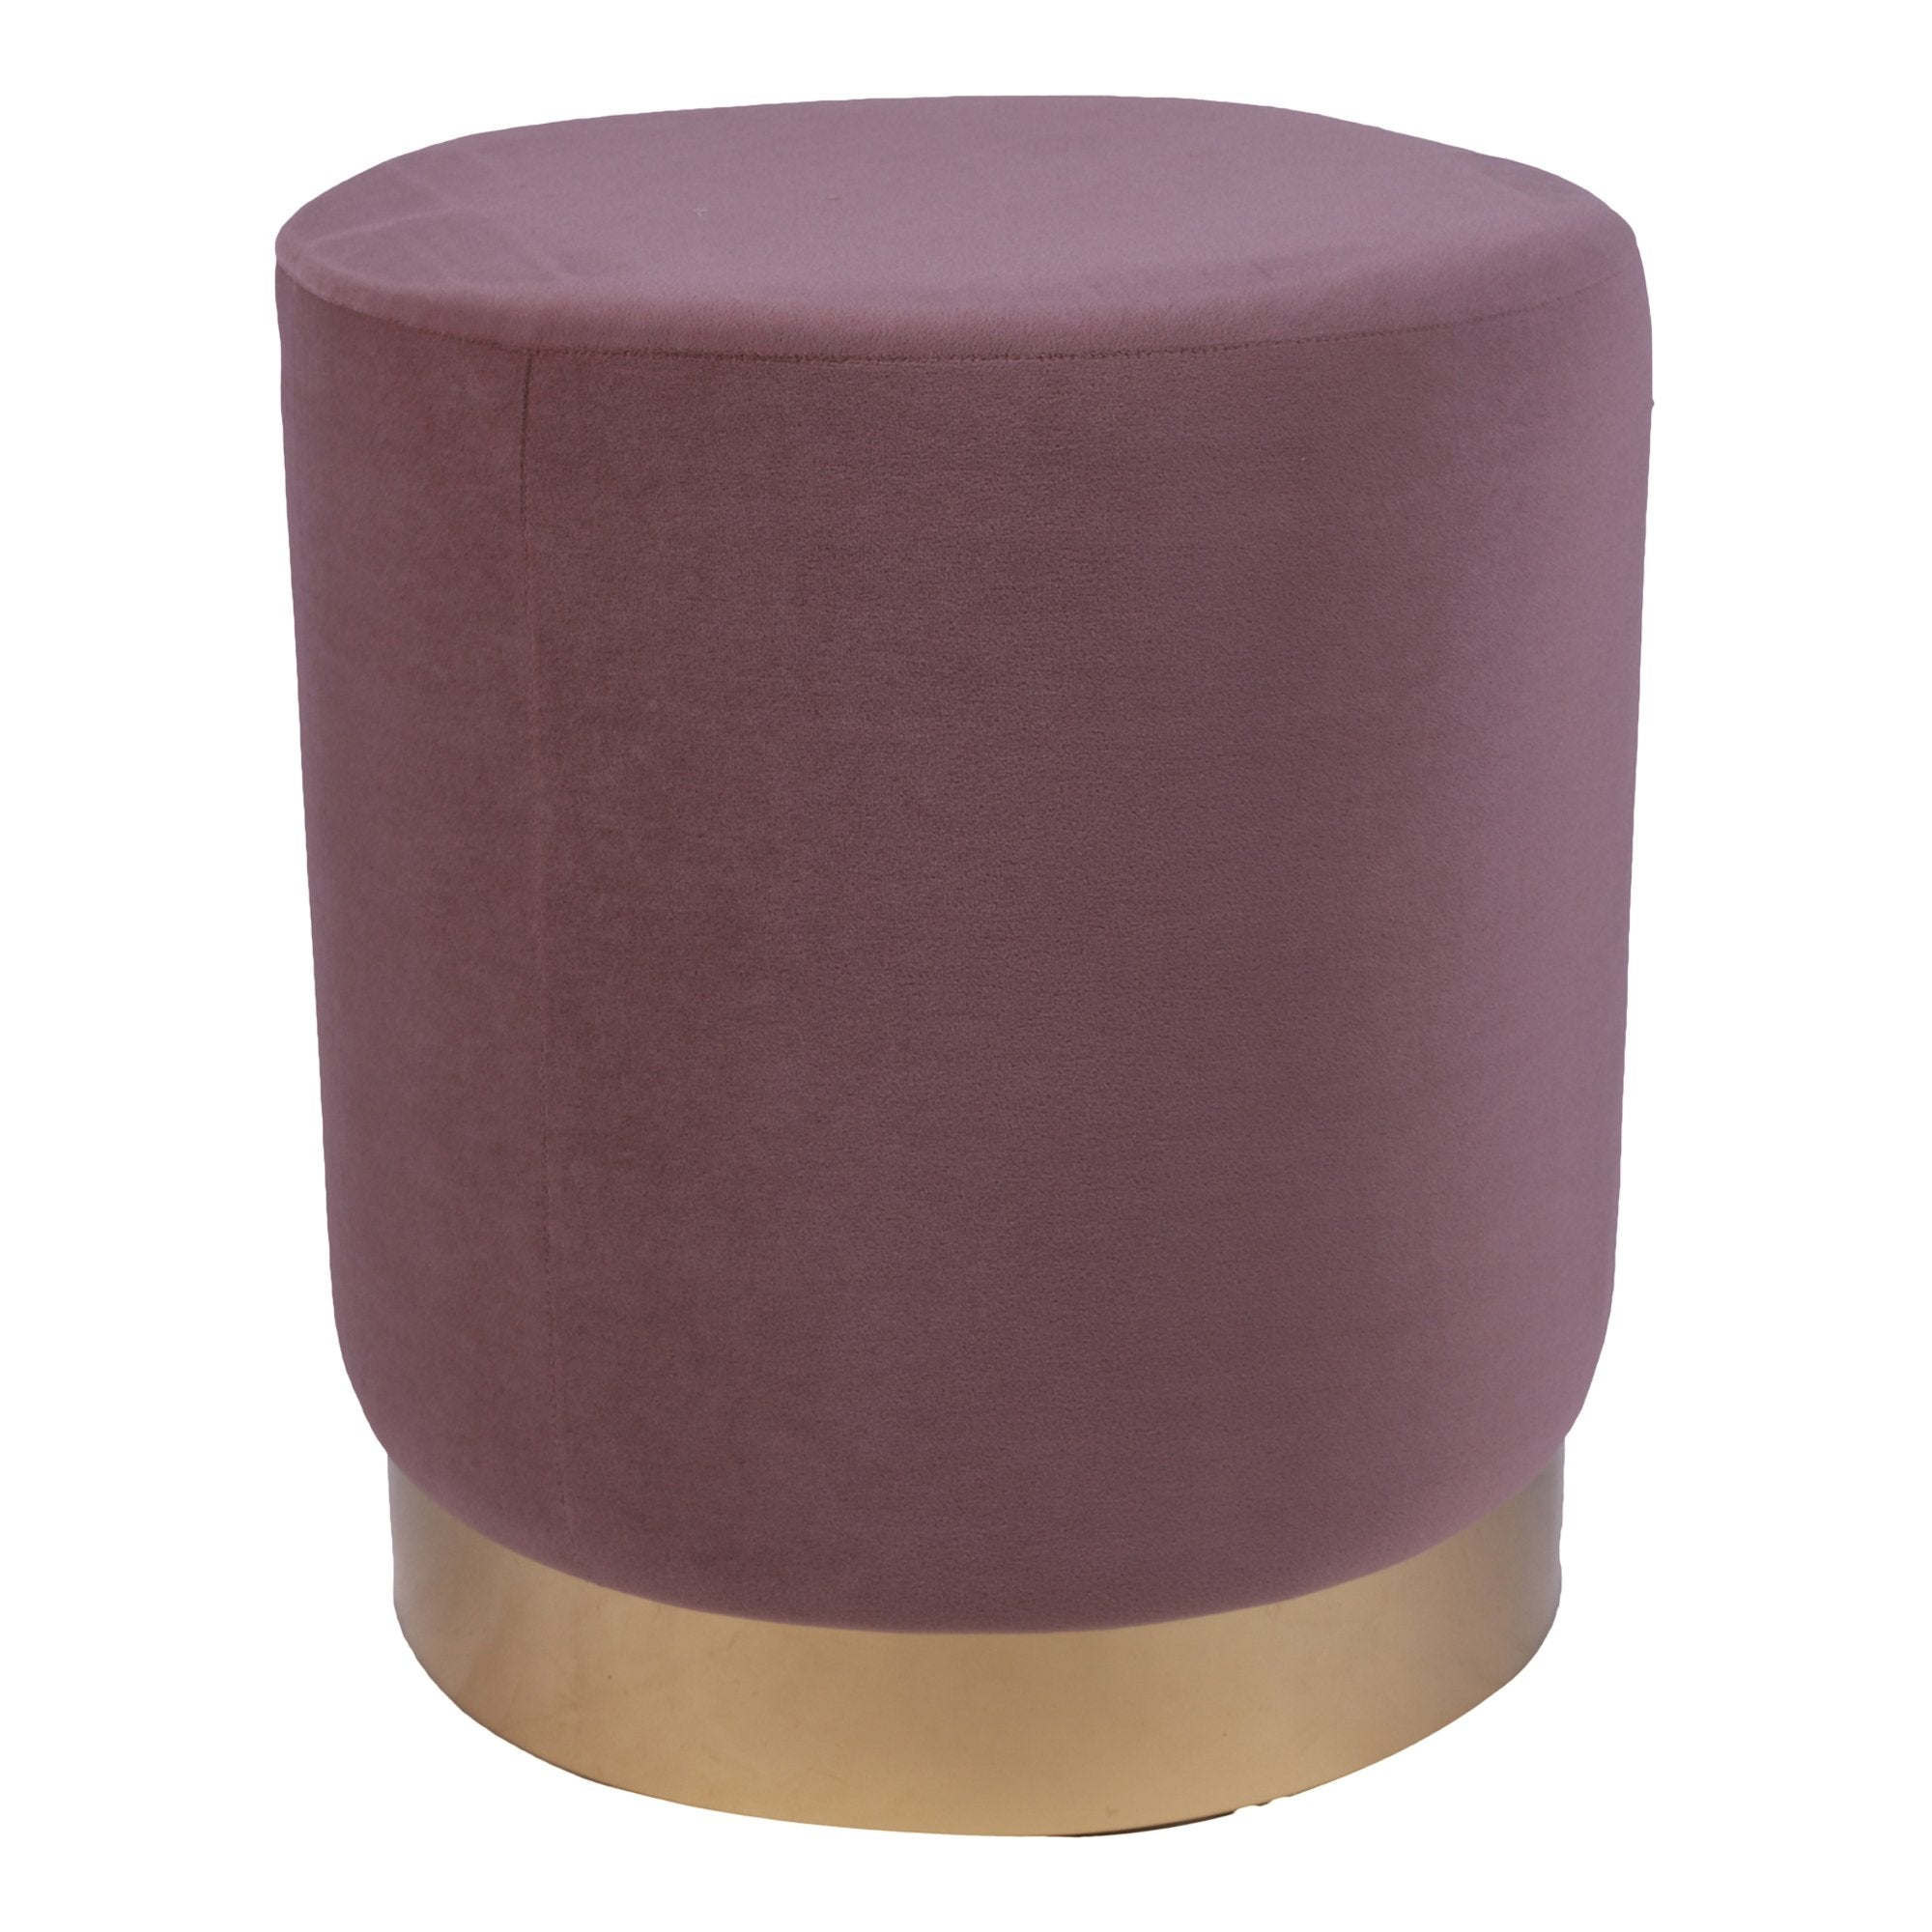 Round Ottoman in Lavender color - Teak Tale